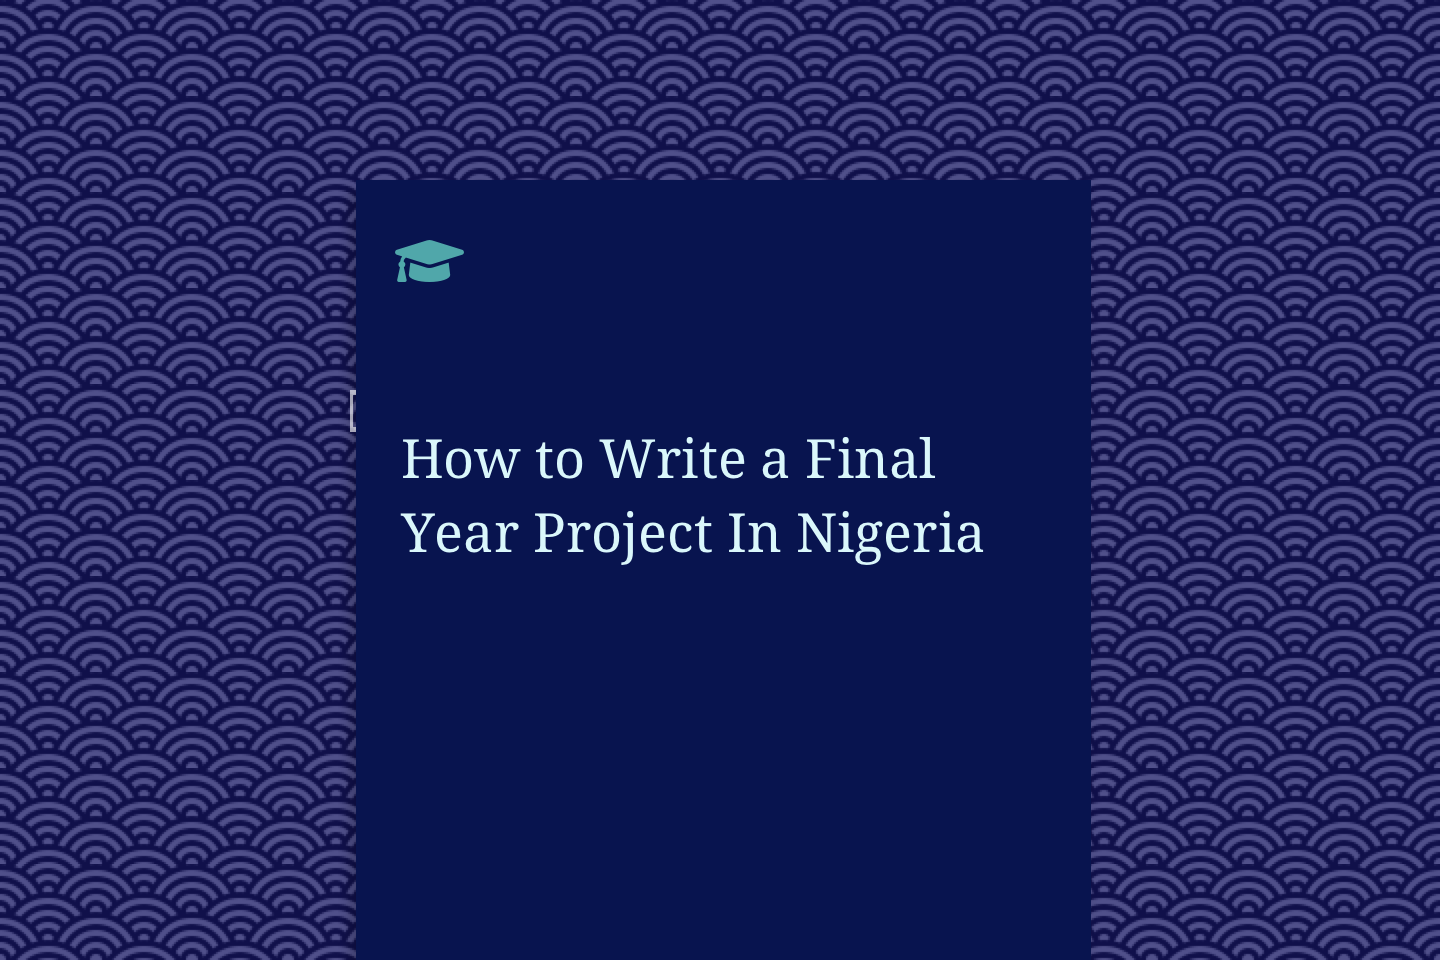 How to Write a Final Year Project In Nigeria